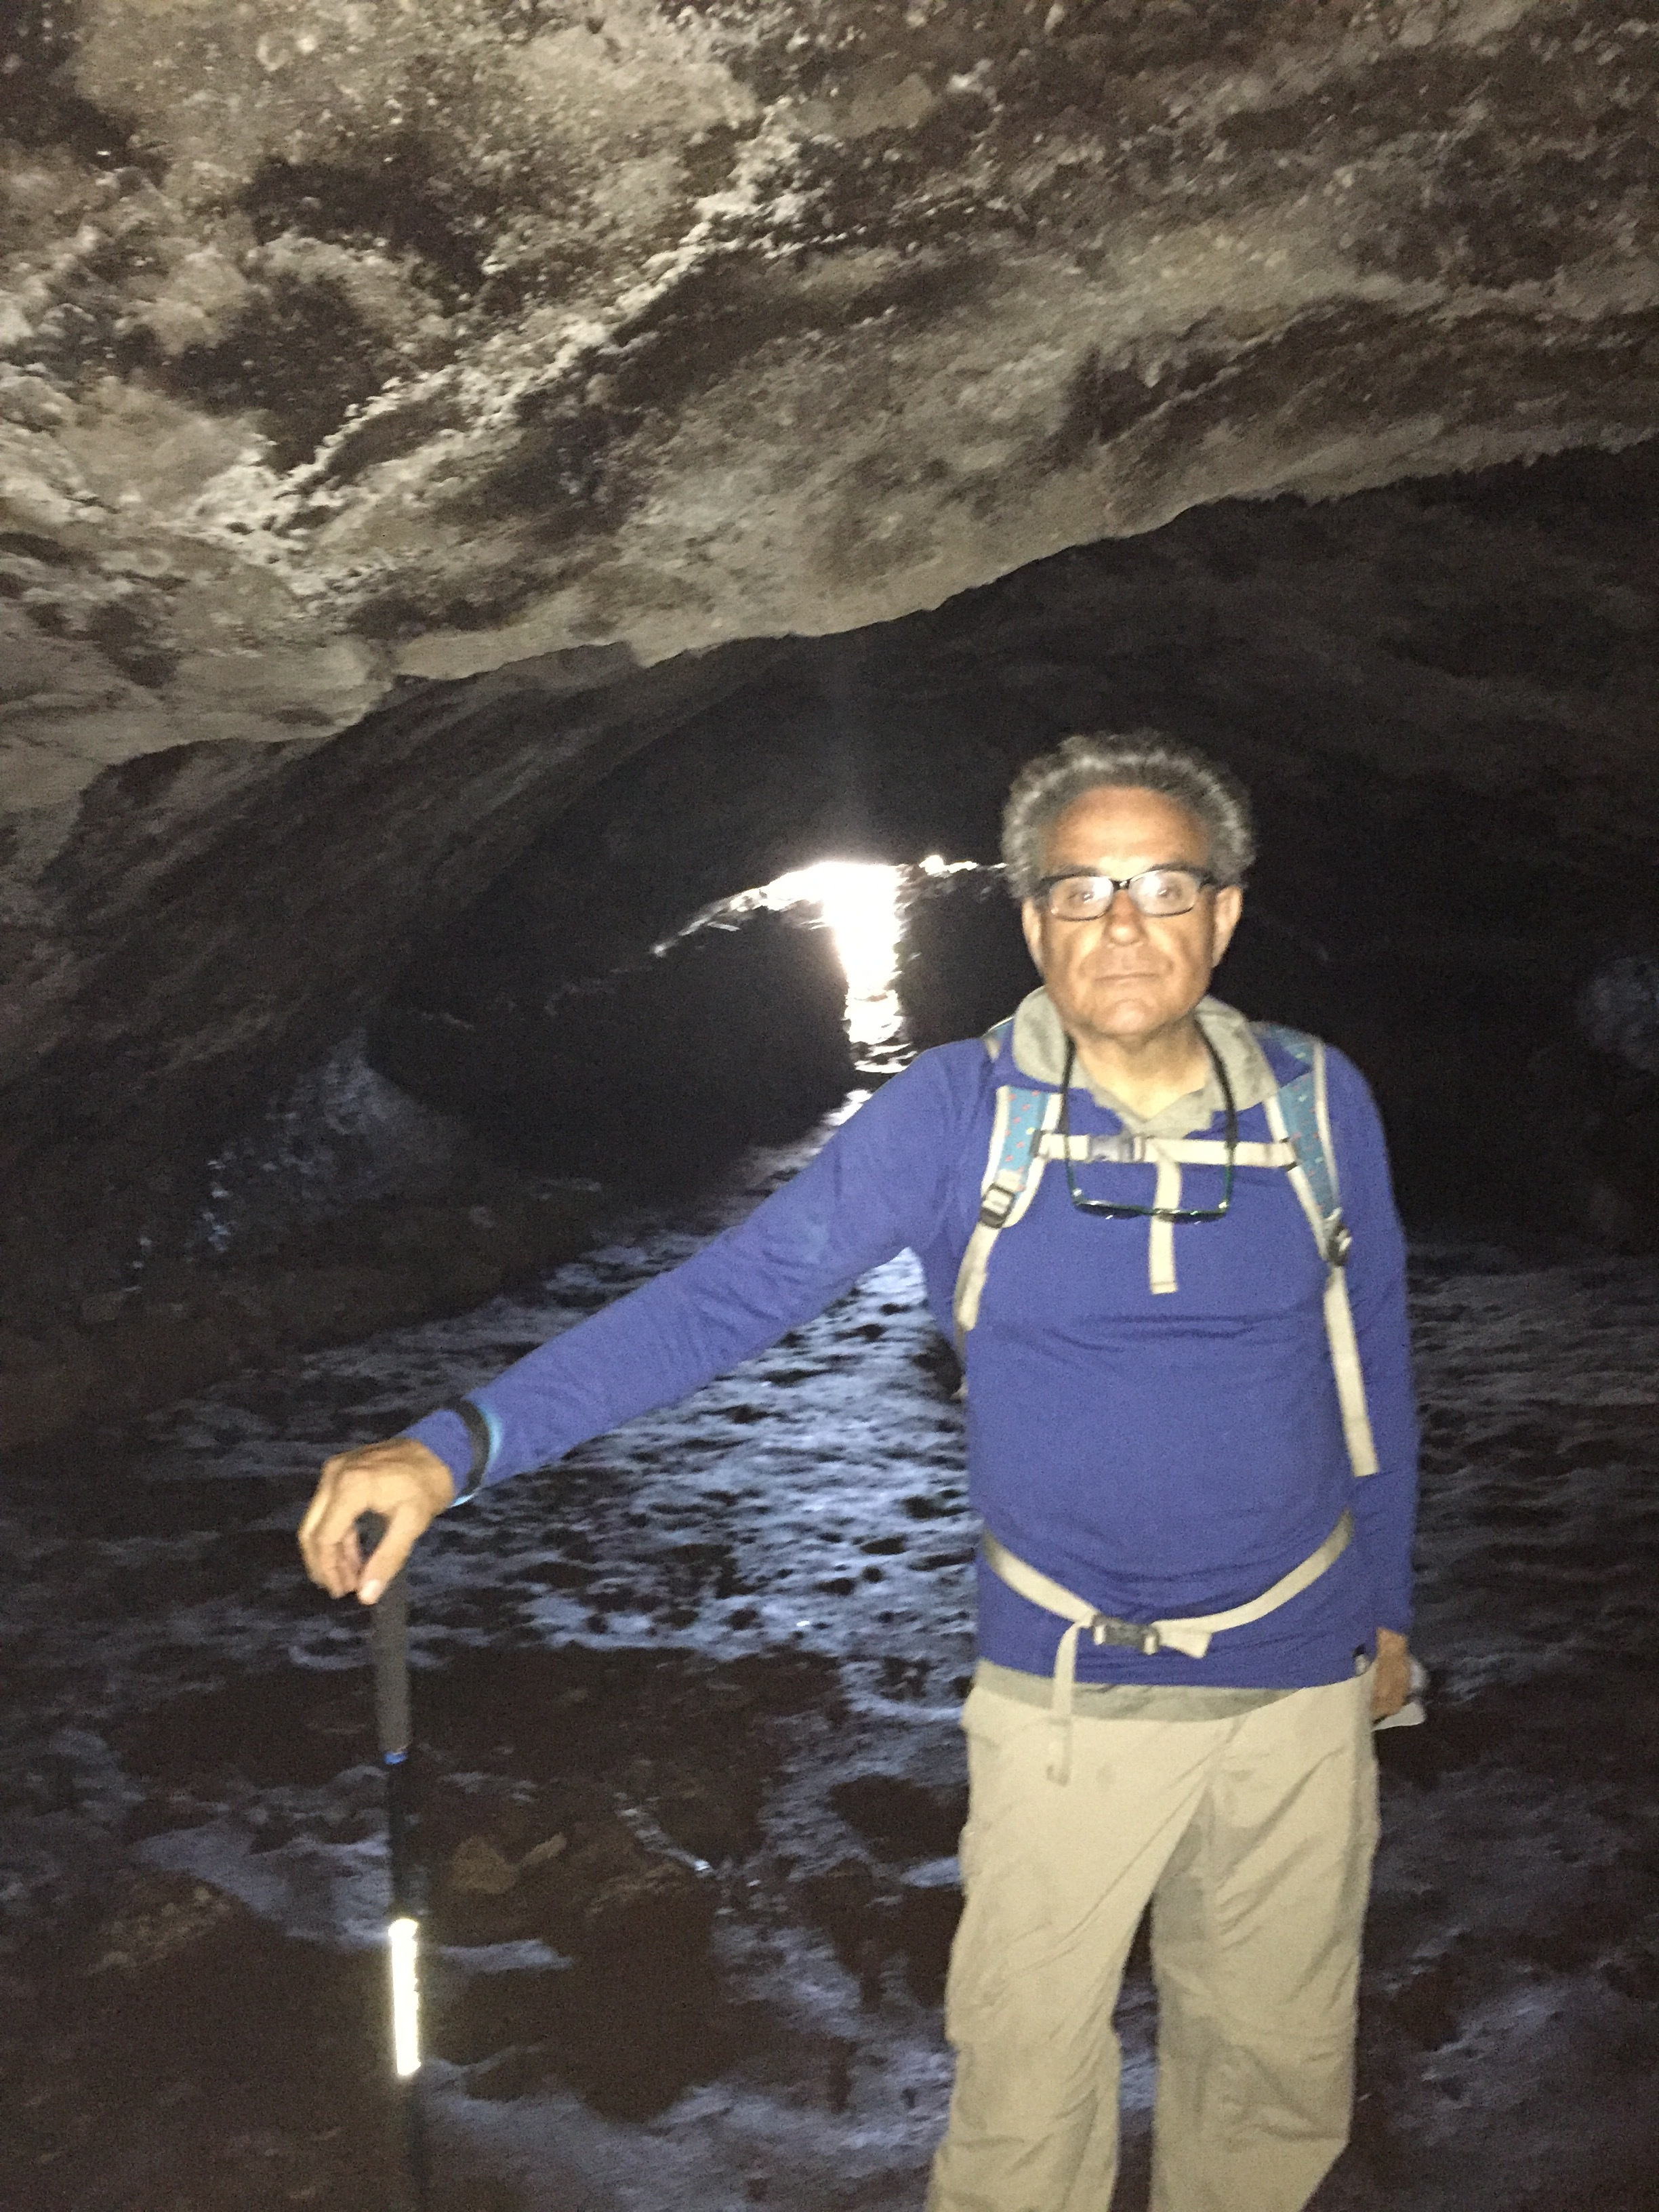 Frank in cave